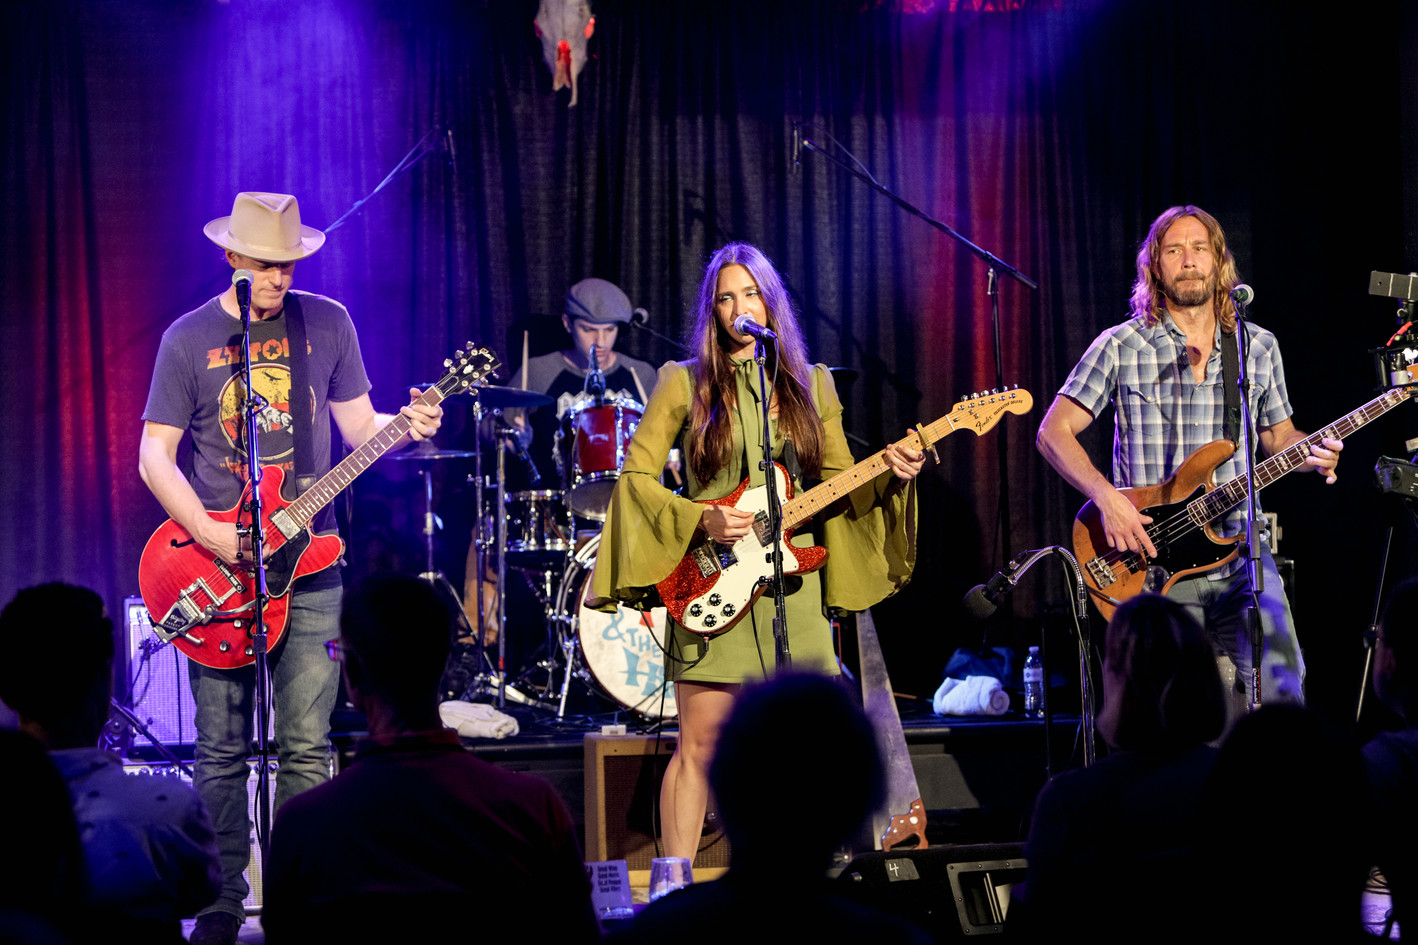 Angela Perley and The Howlin' Moons